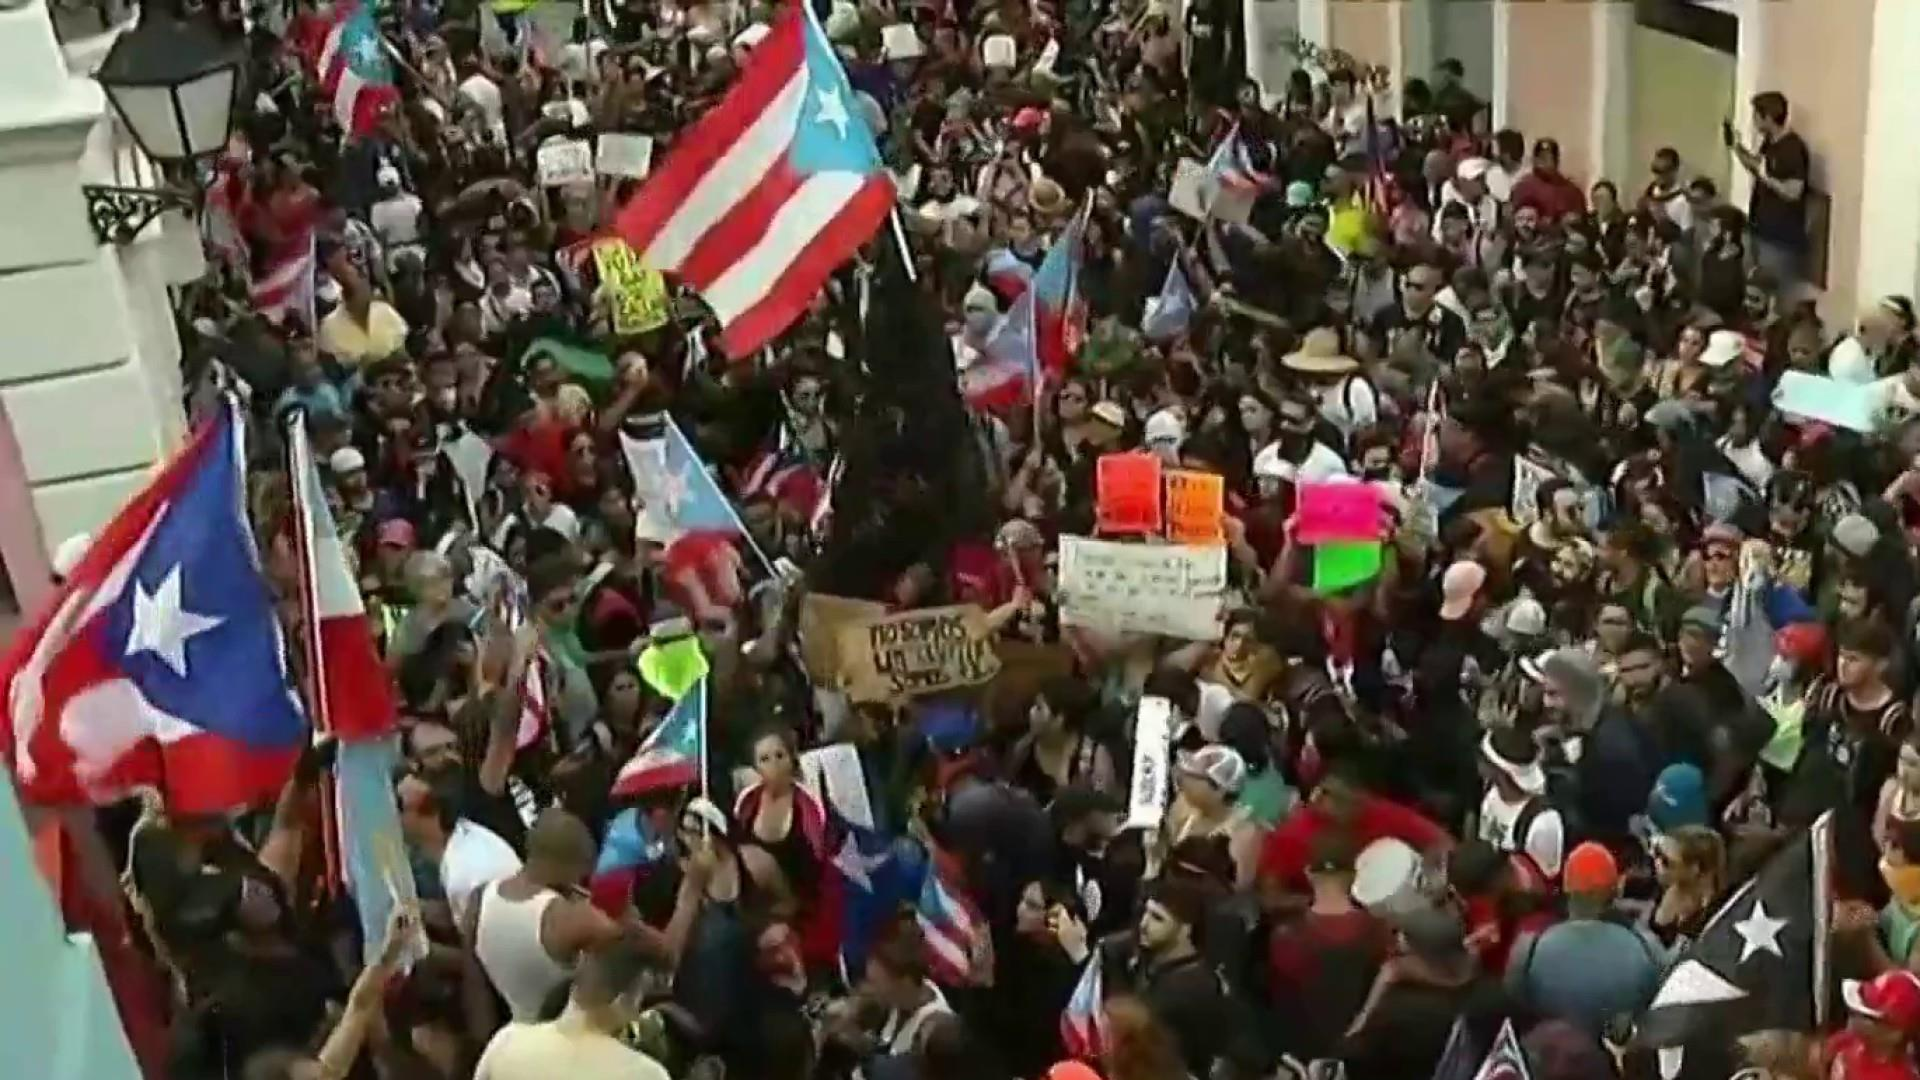 Thousands protest at mass rally in San Juan, demanding Puerto Rico governor's resignation